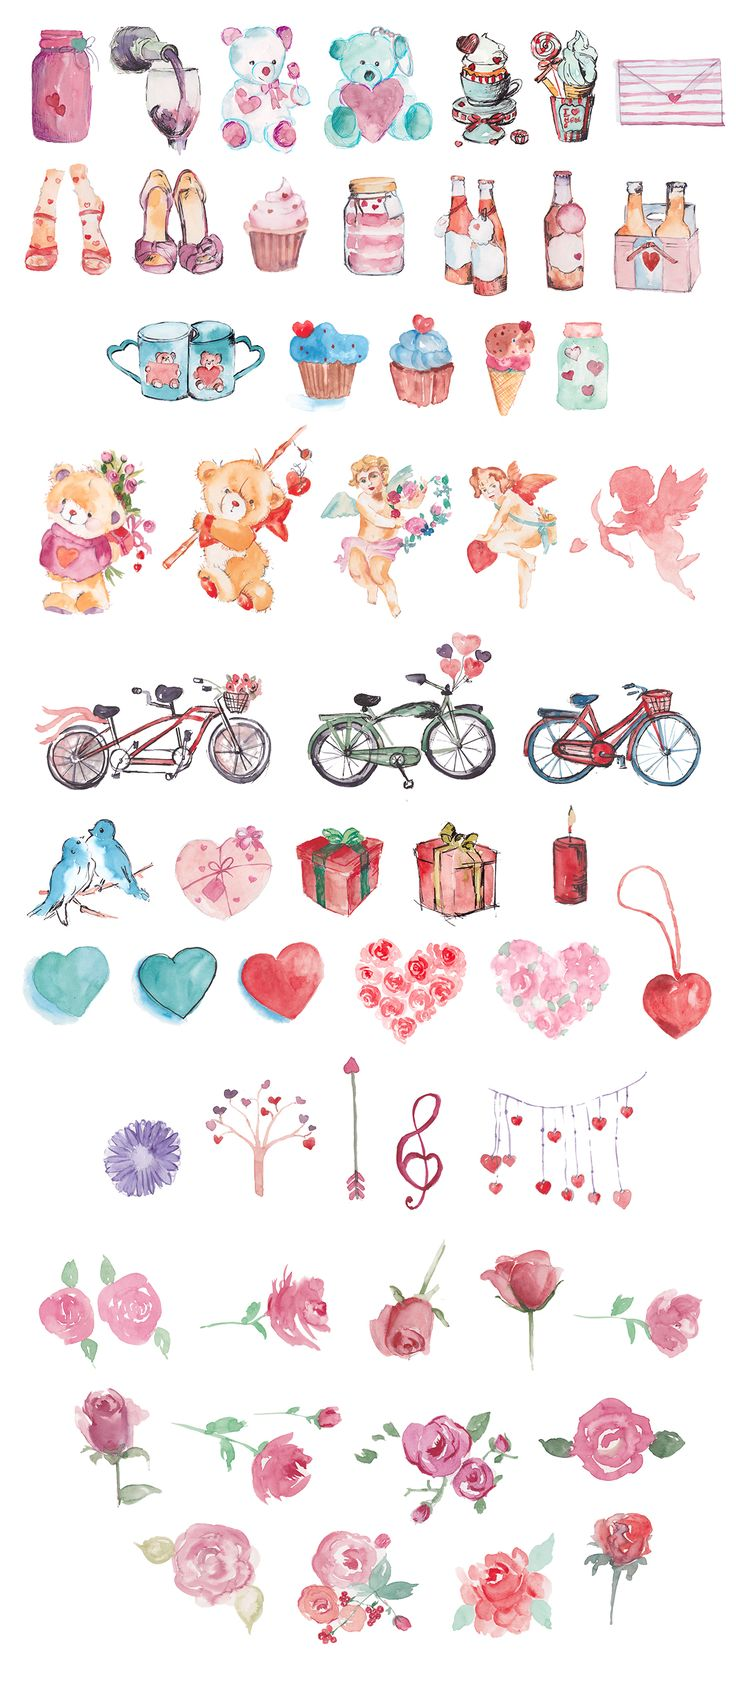 Lovely Watercolor Doodles - Illustrations - 3